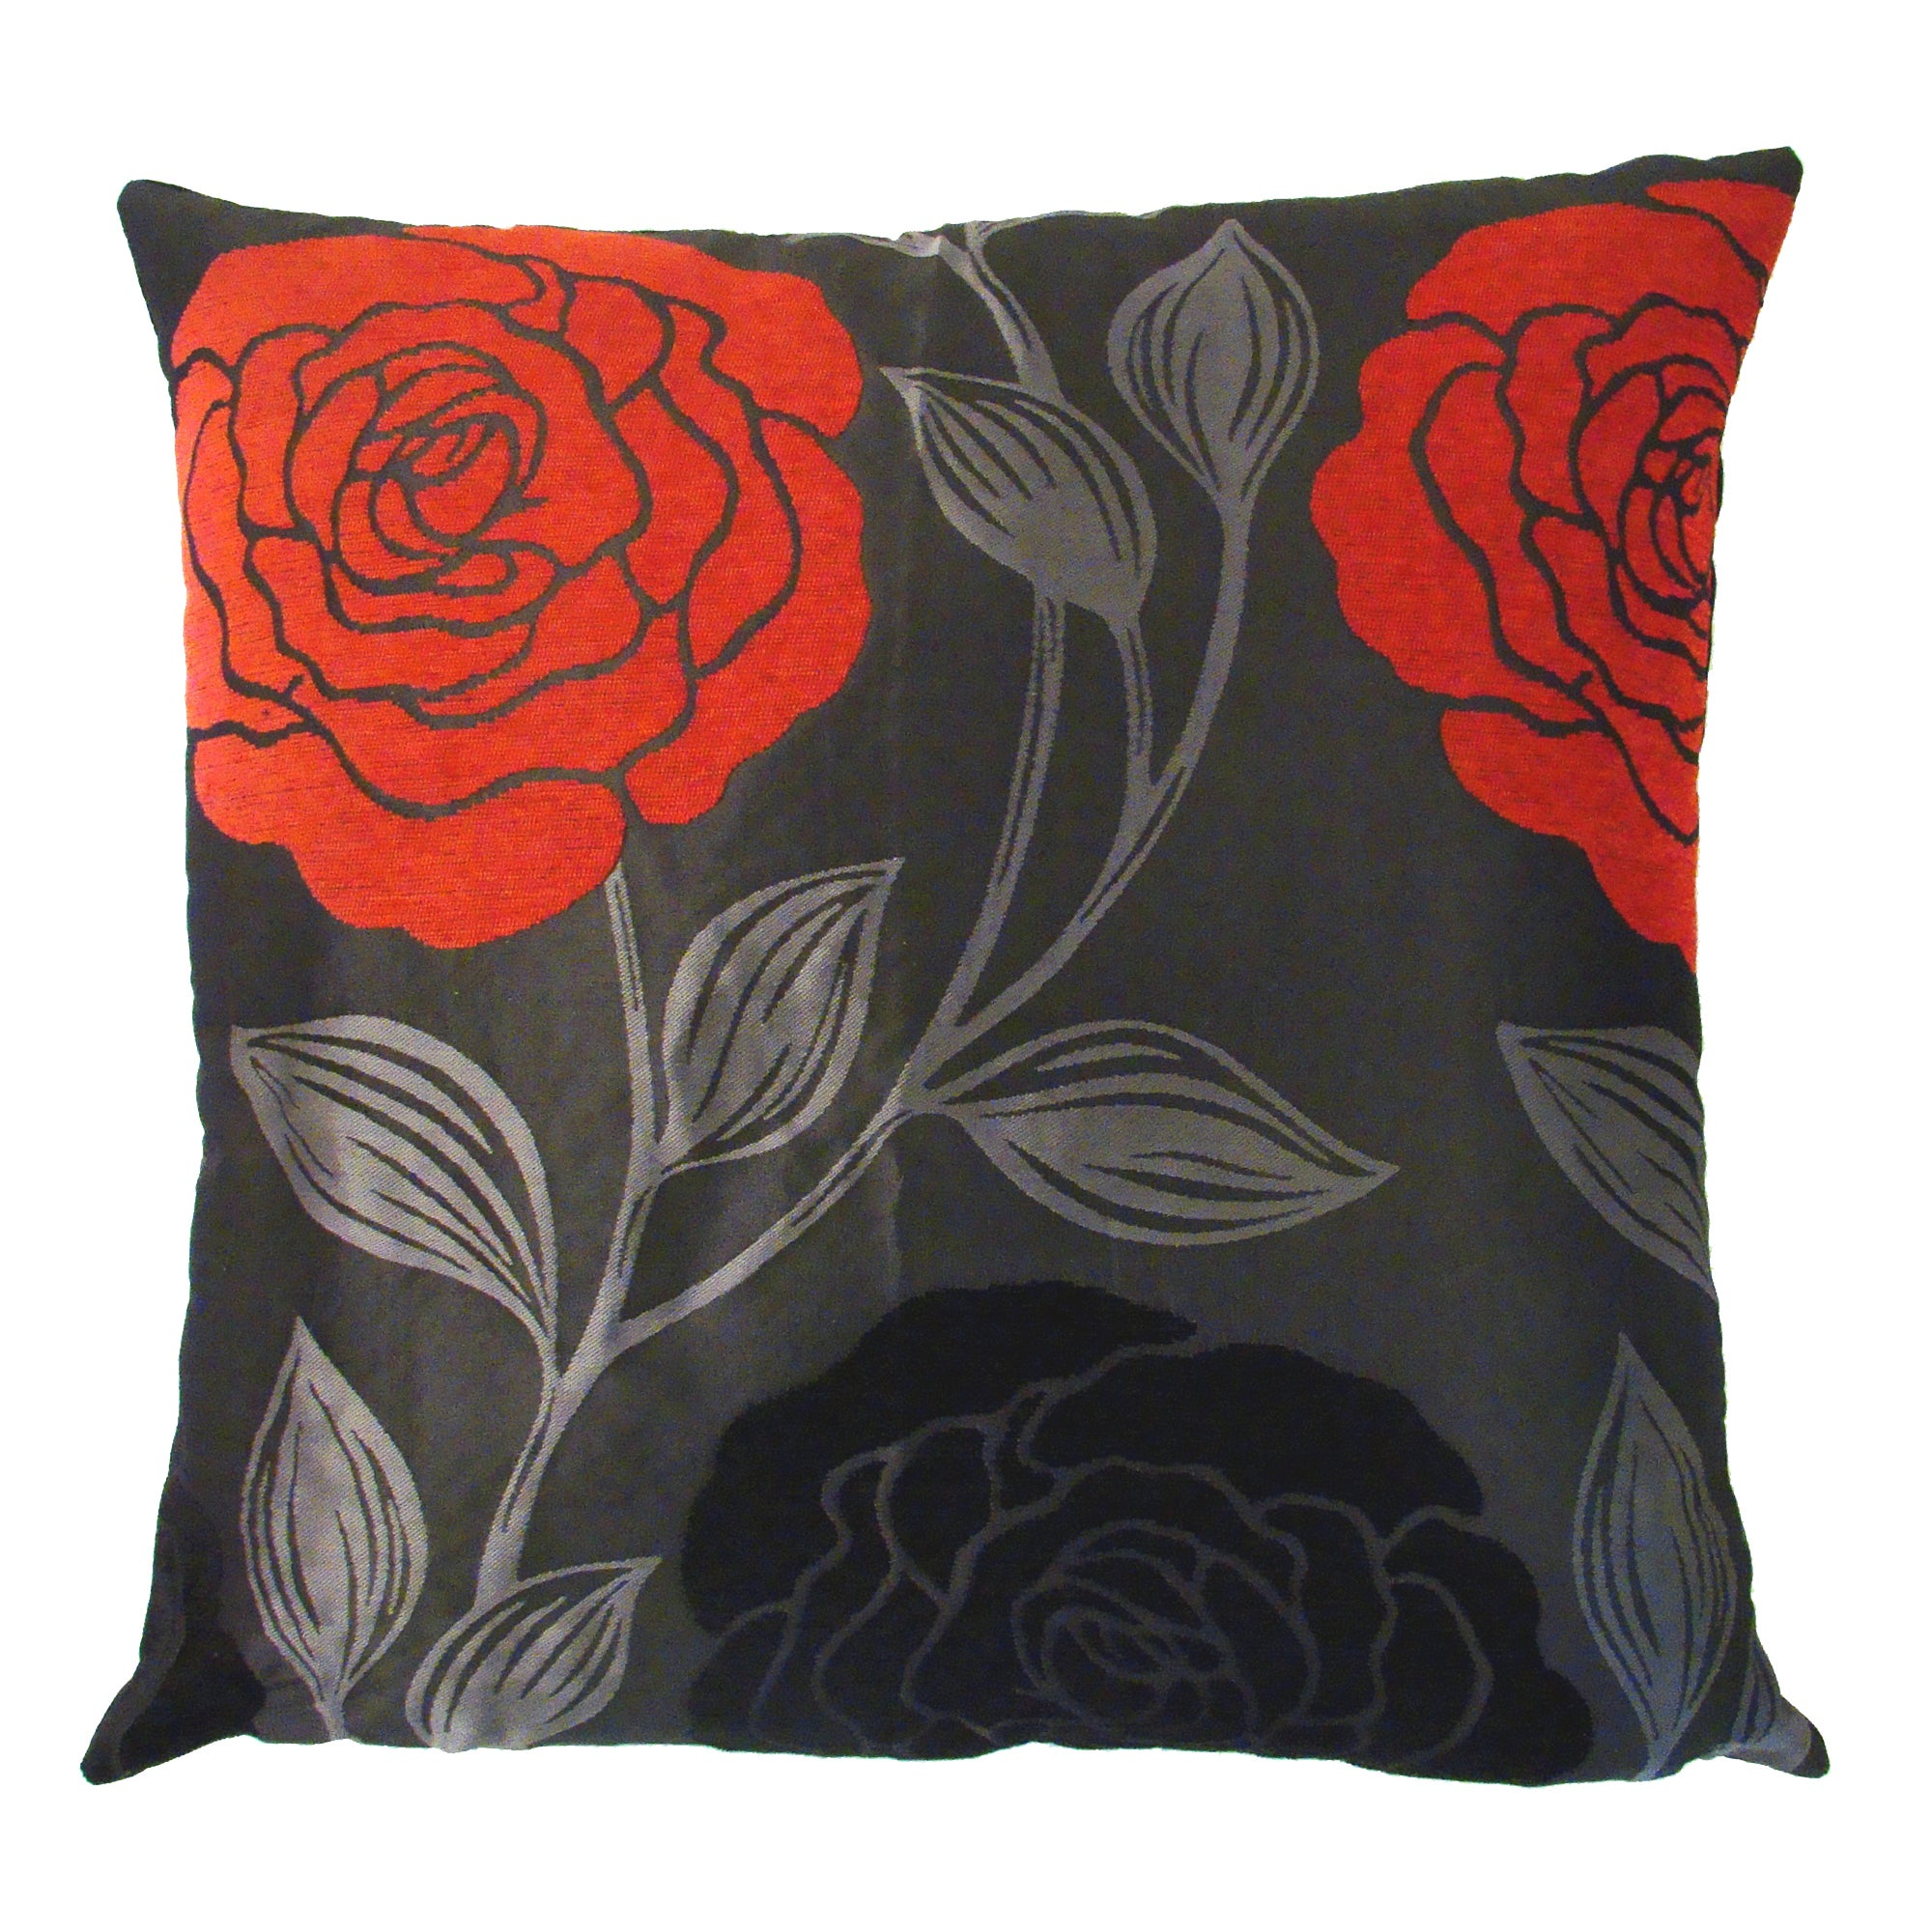 Red Lucy Cushion Cover